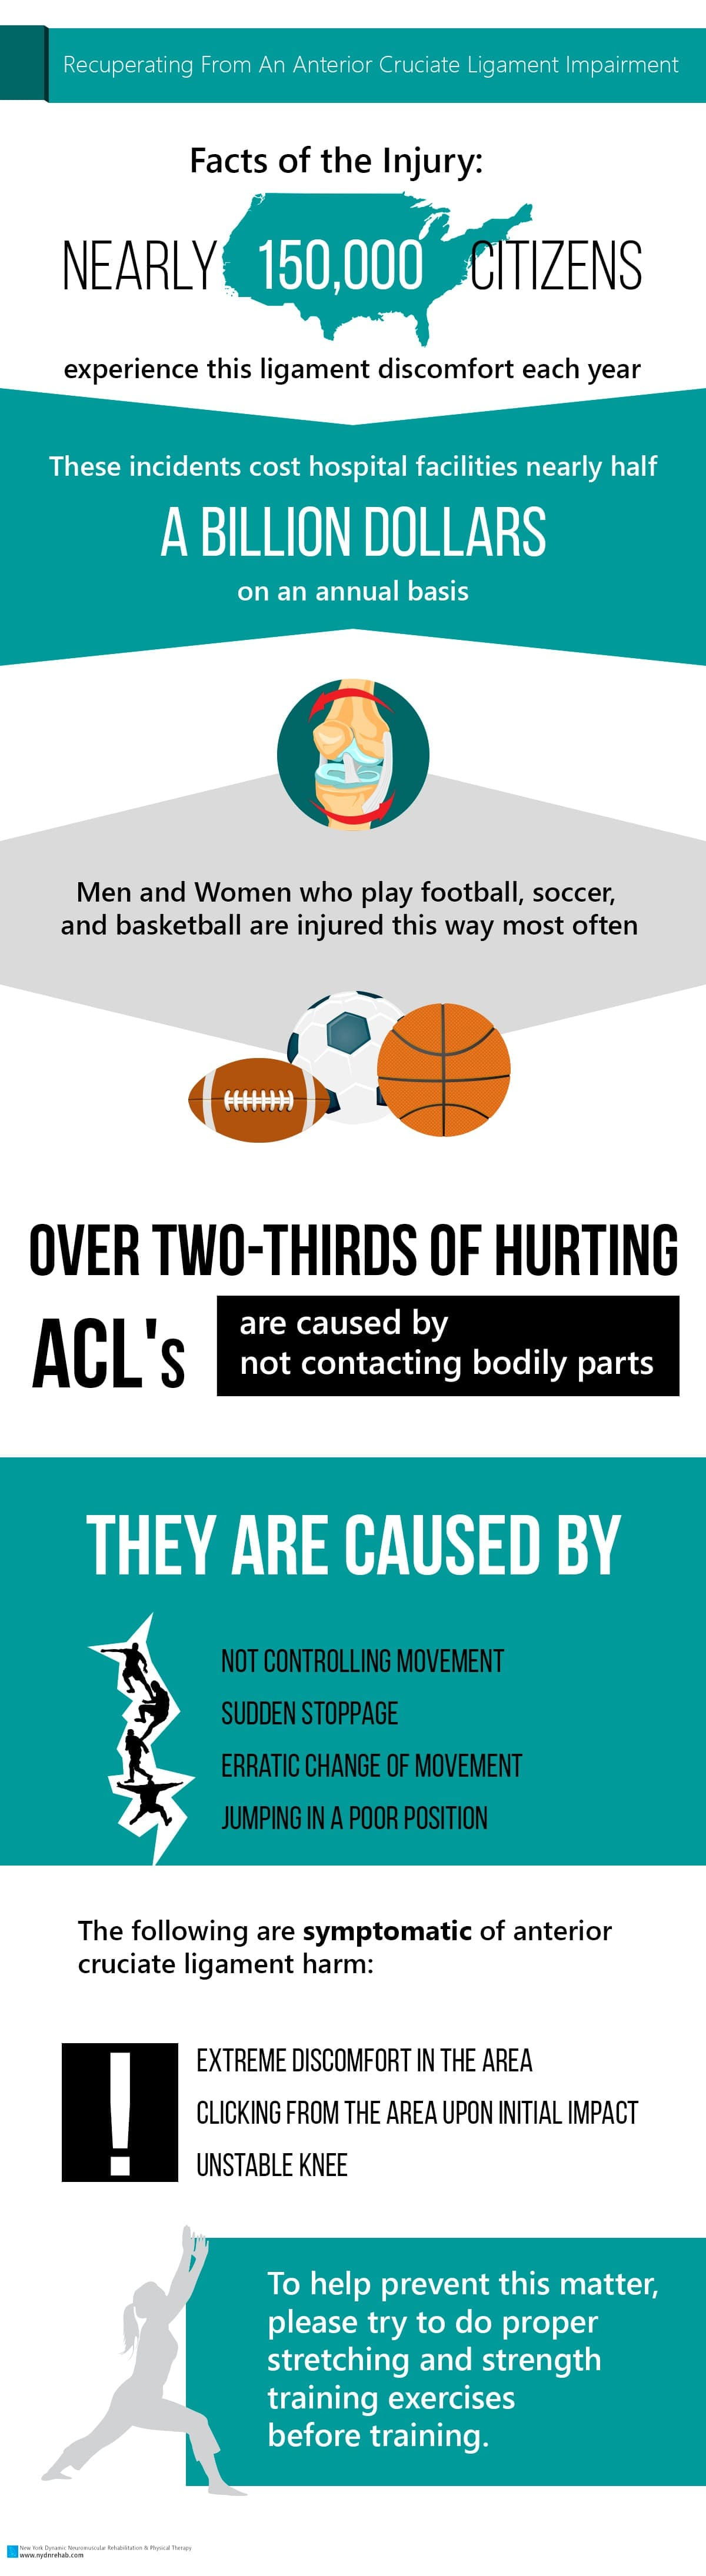 Recuperating From An Anterior Cruciate Ligament Impairment (ACL) Blog  ACL Injury